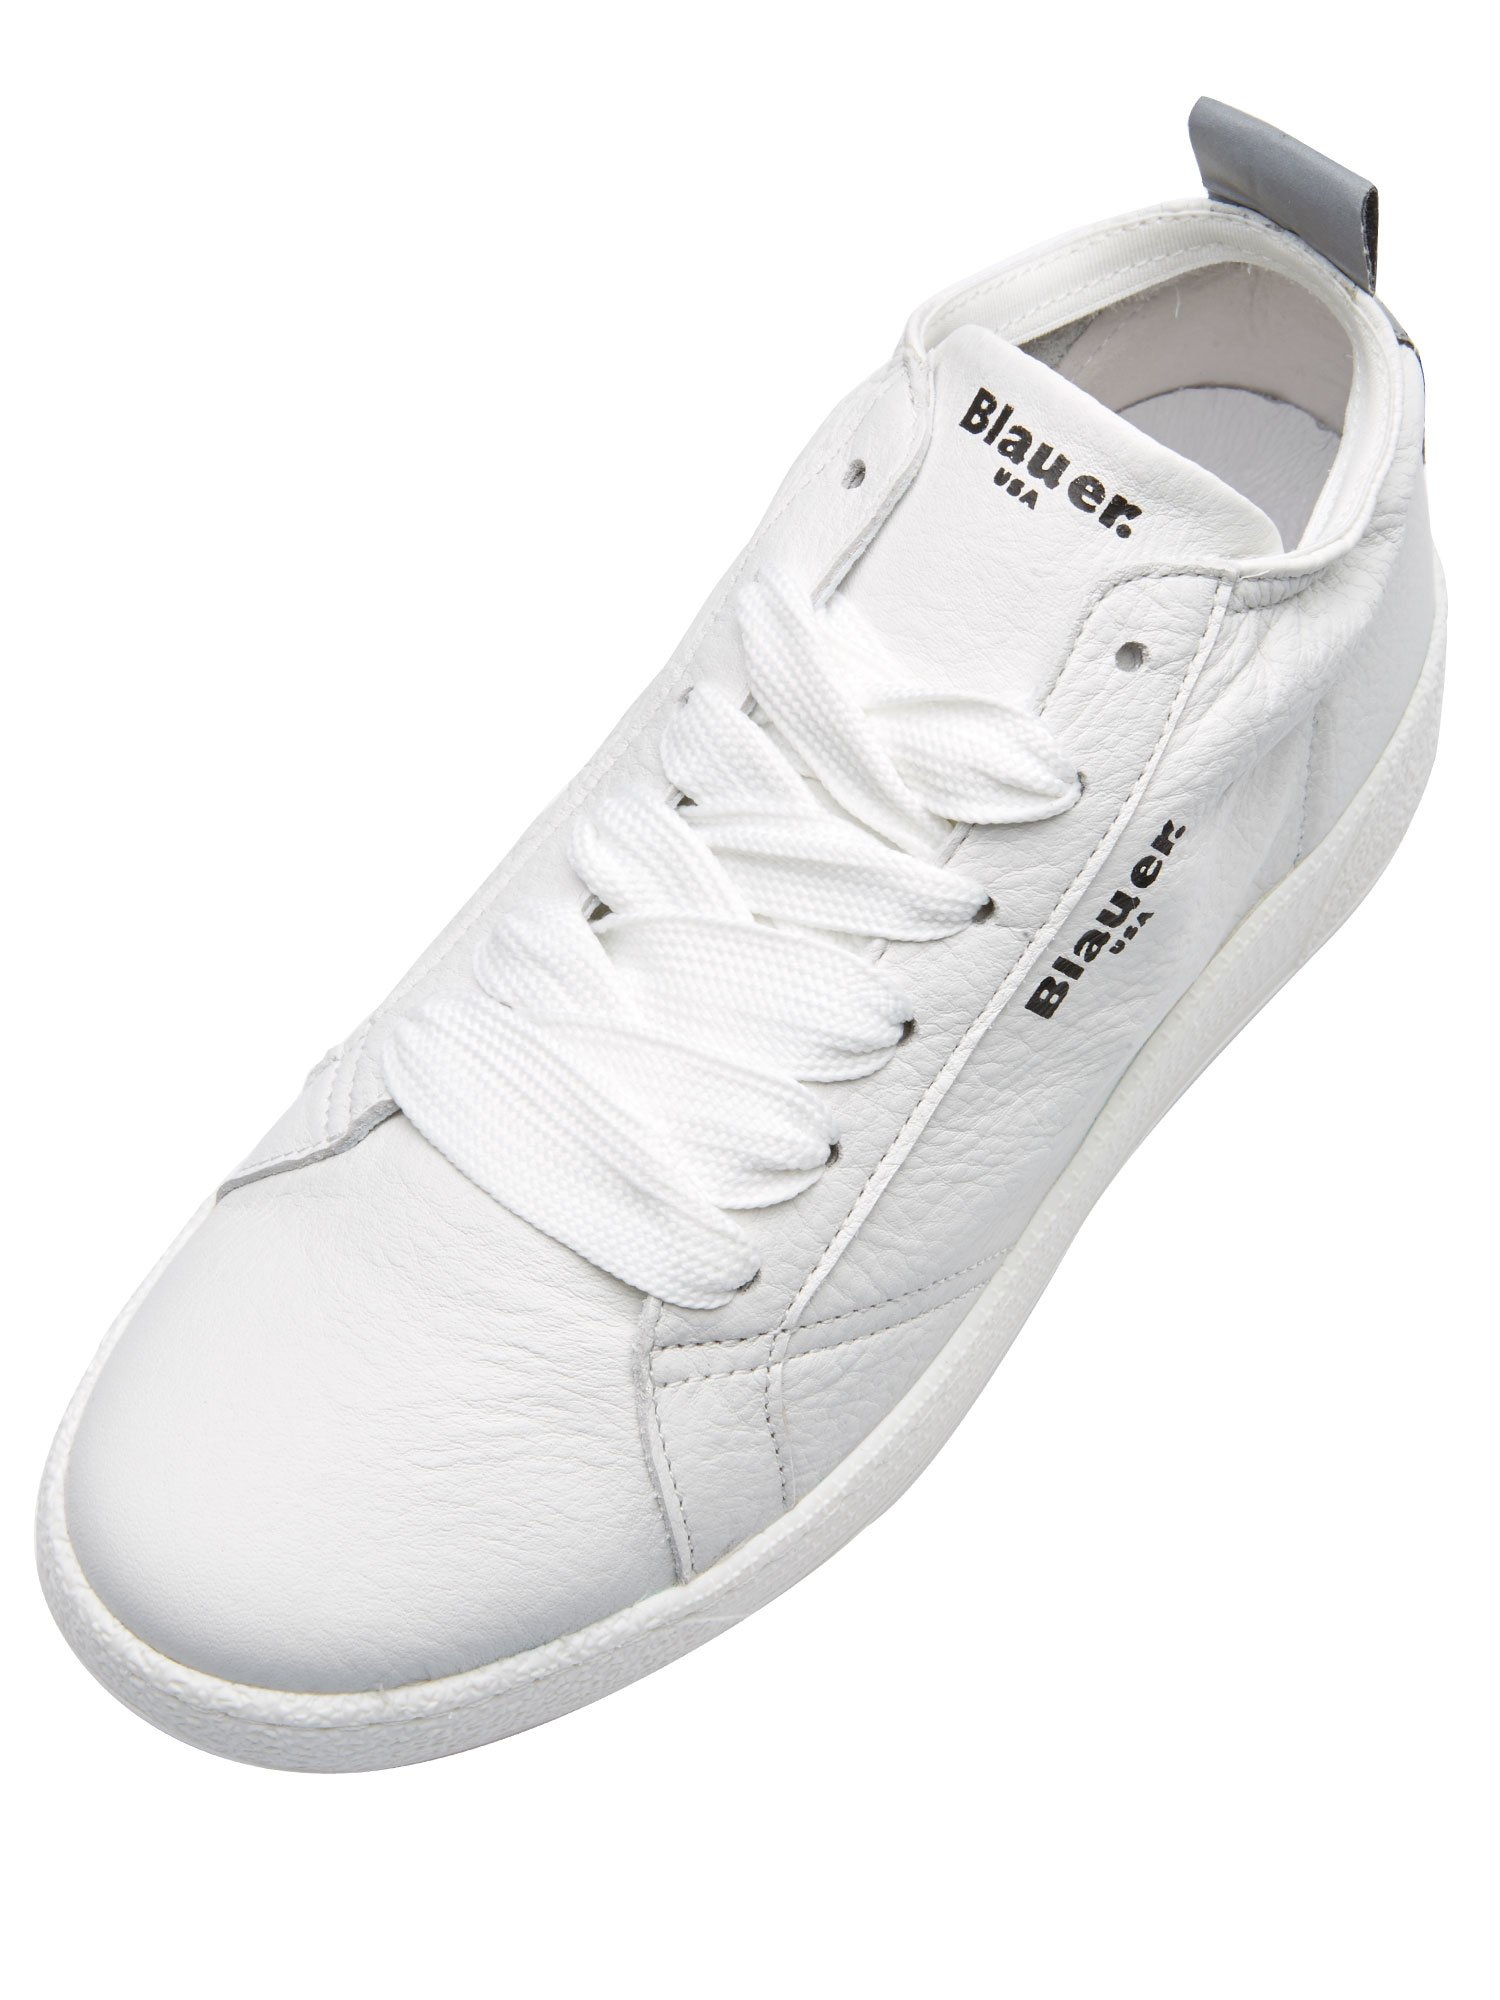 Blauer - OLYMPIA LEA High-top trainers - white - Blauer